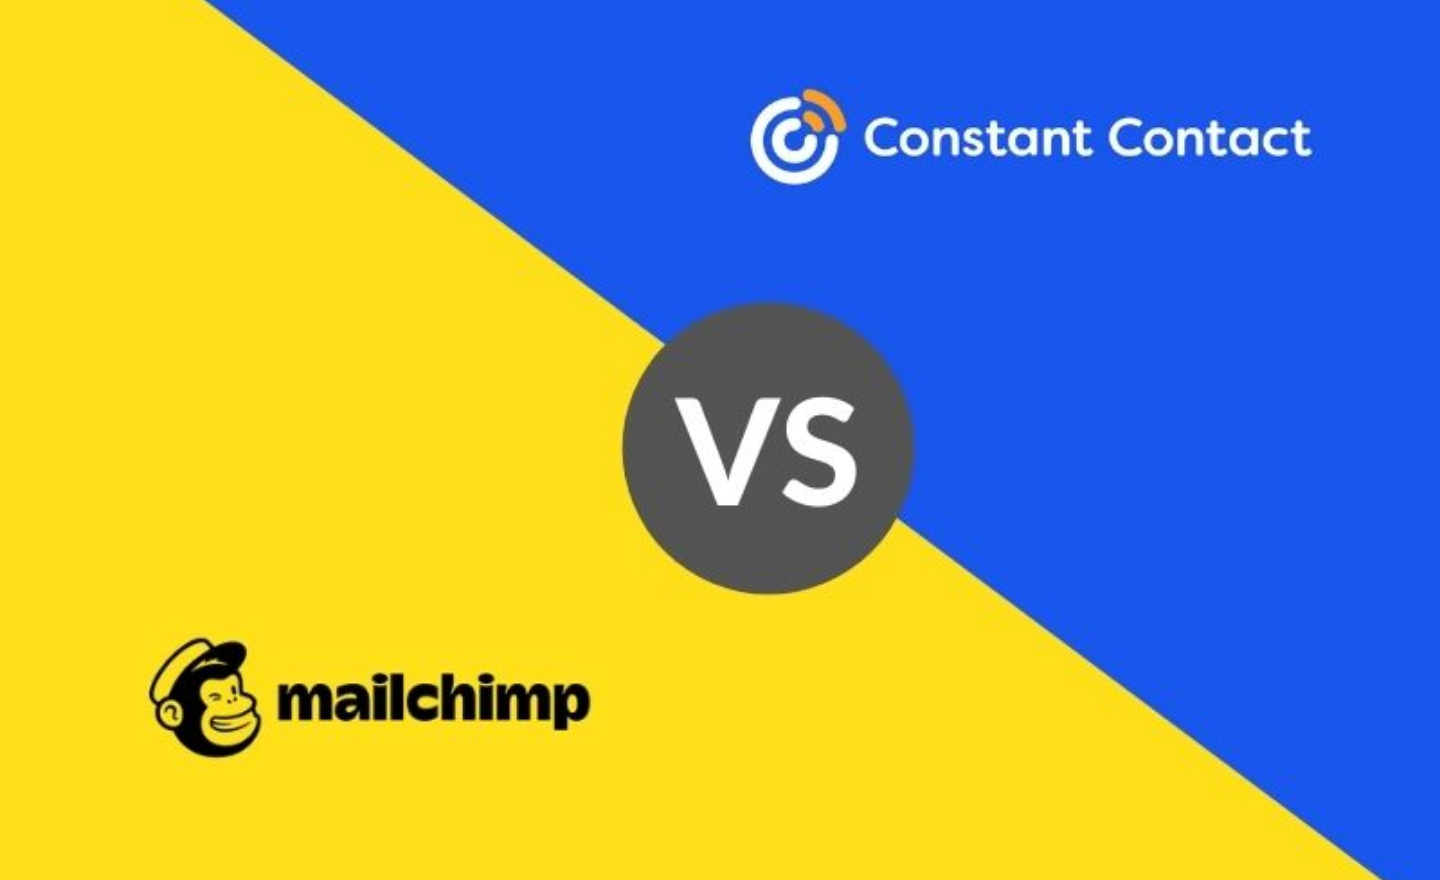 MailChimp and Constant Contact